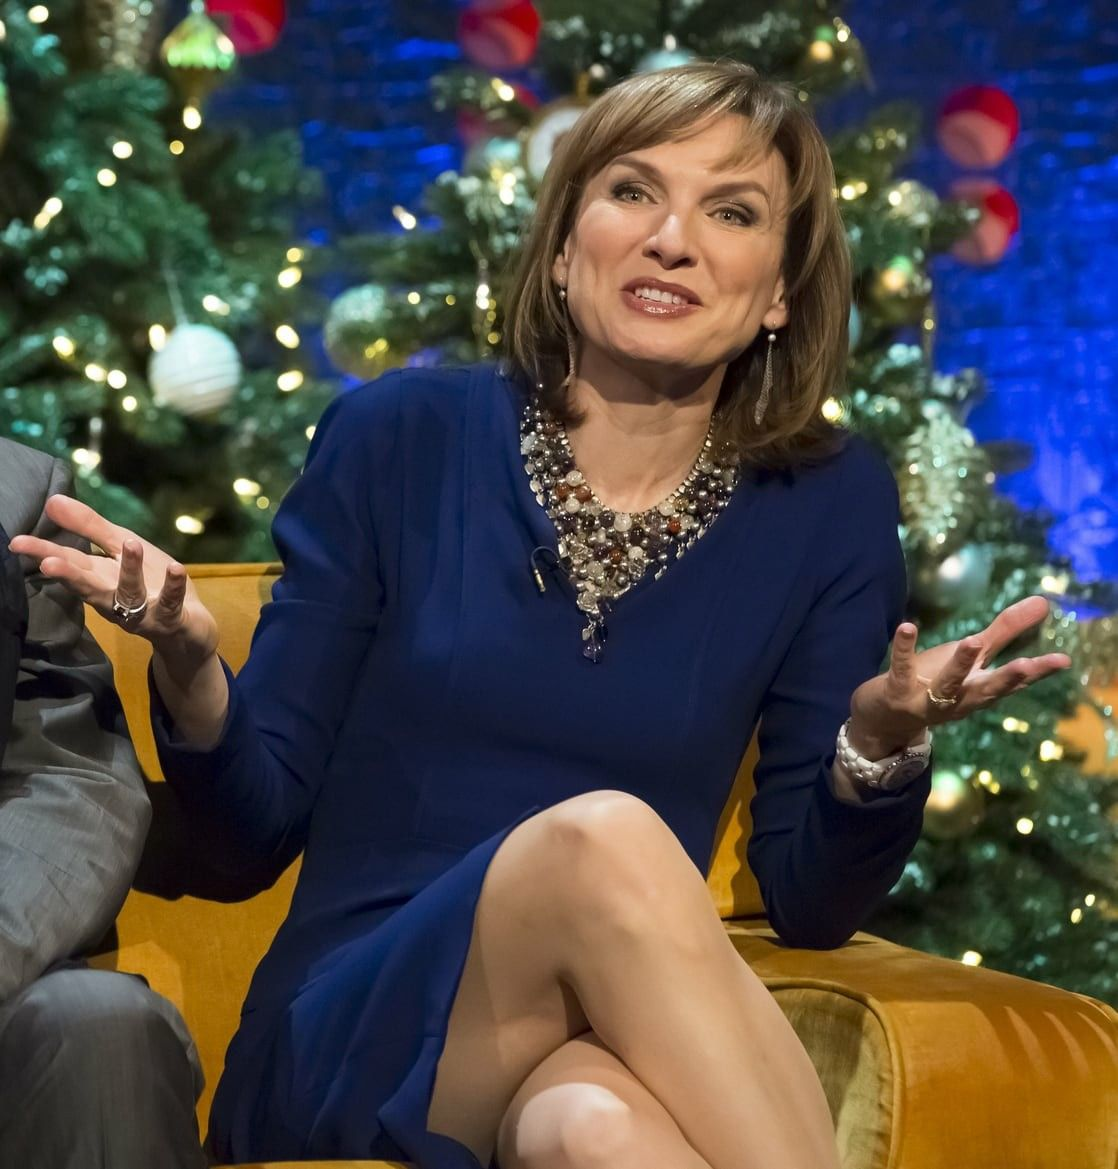 Pin by Rudy Sayre on Fiona bruce in 2020 Fiona bruce